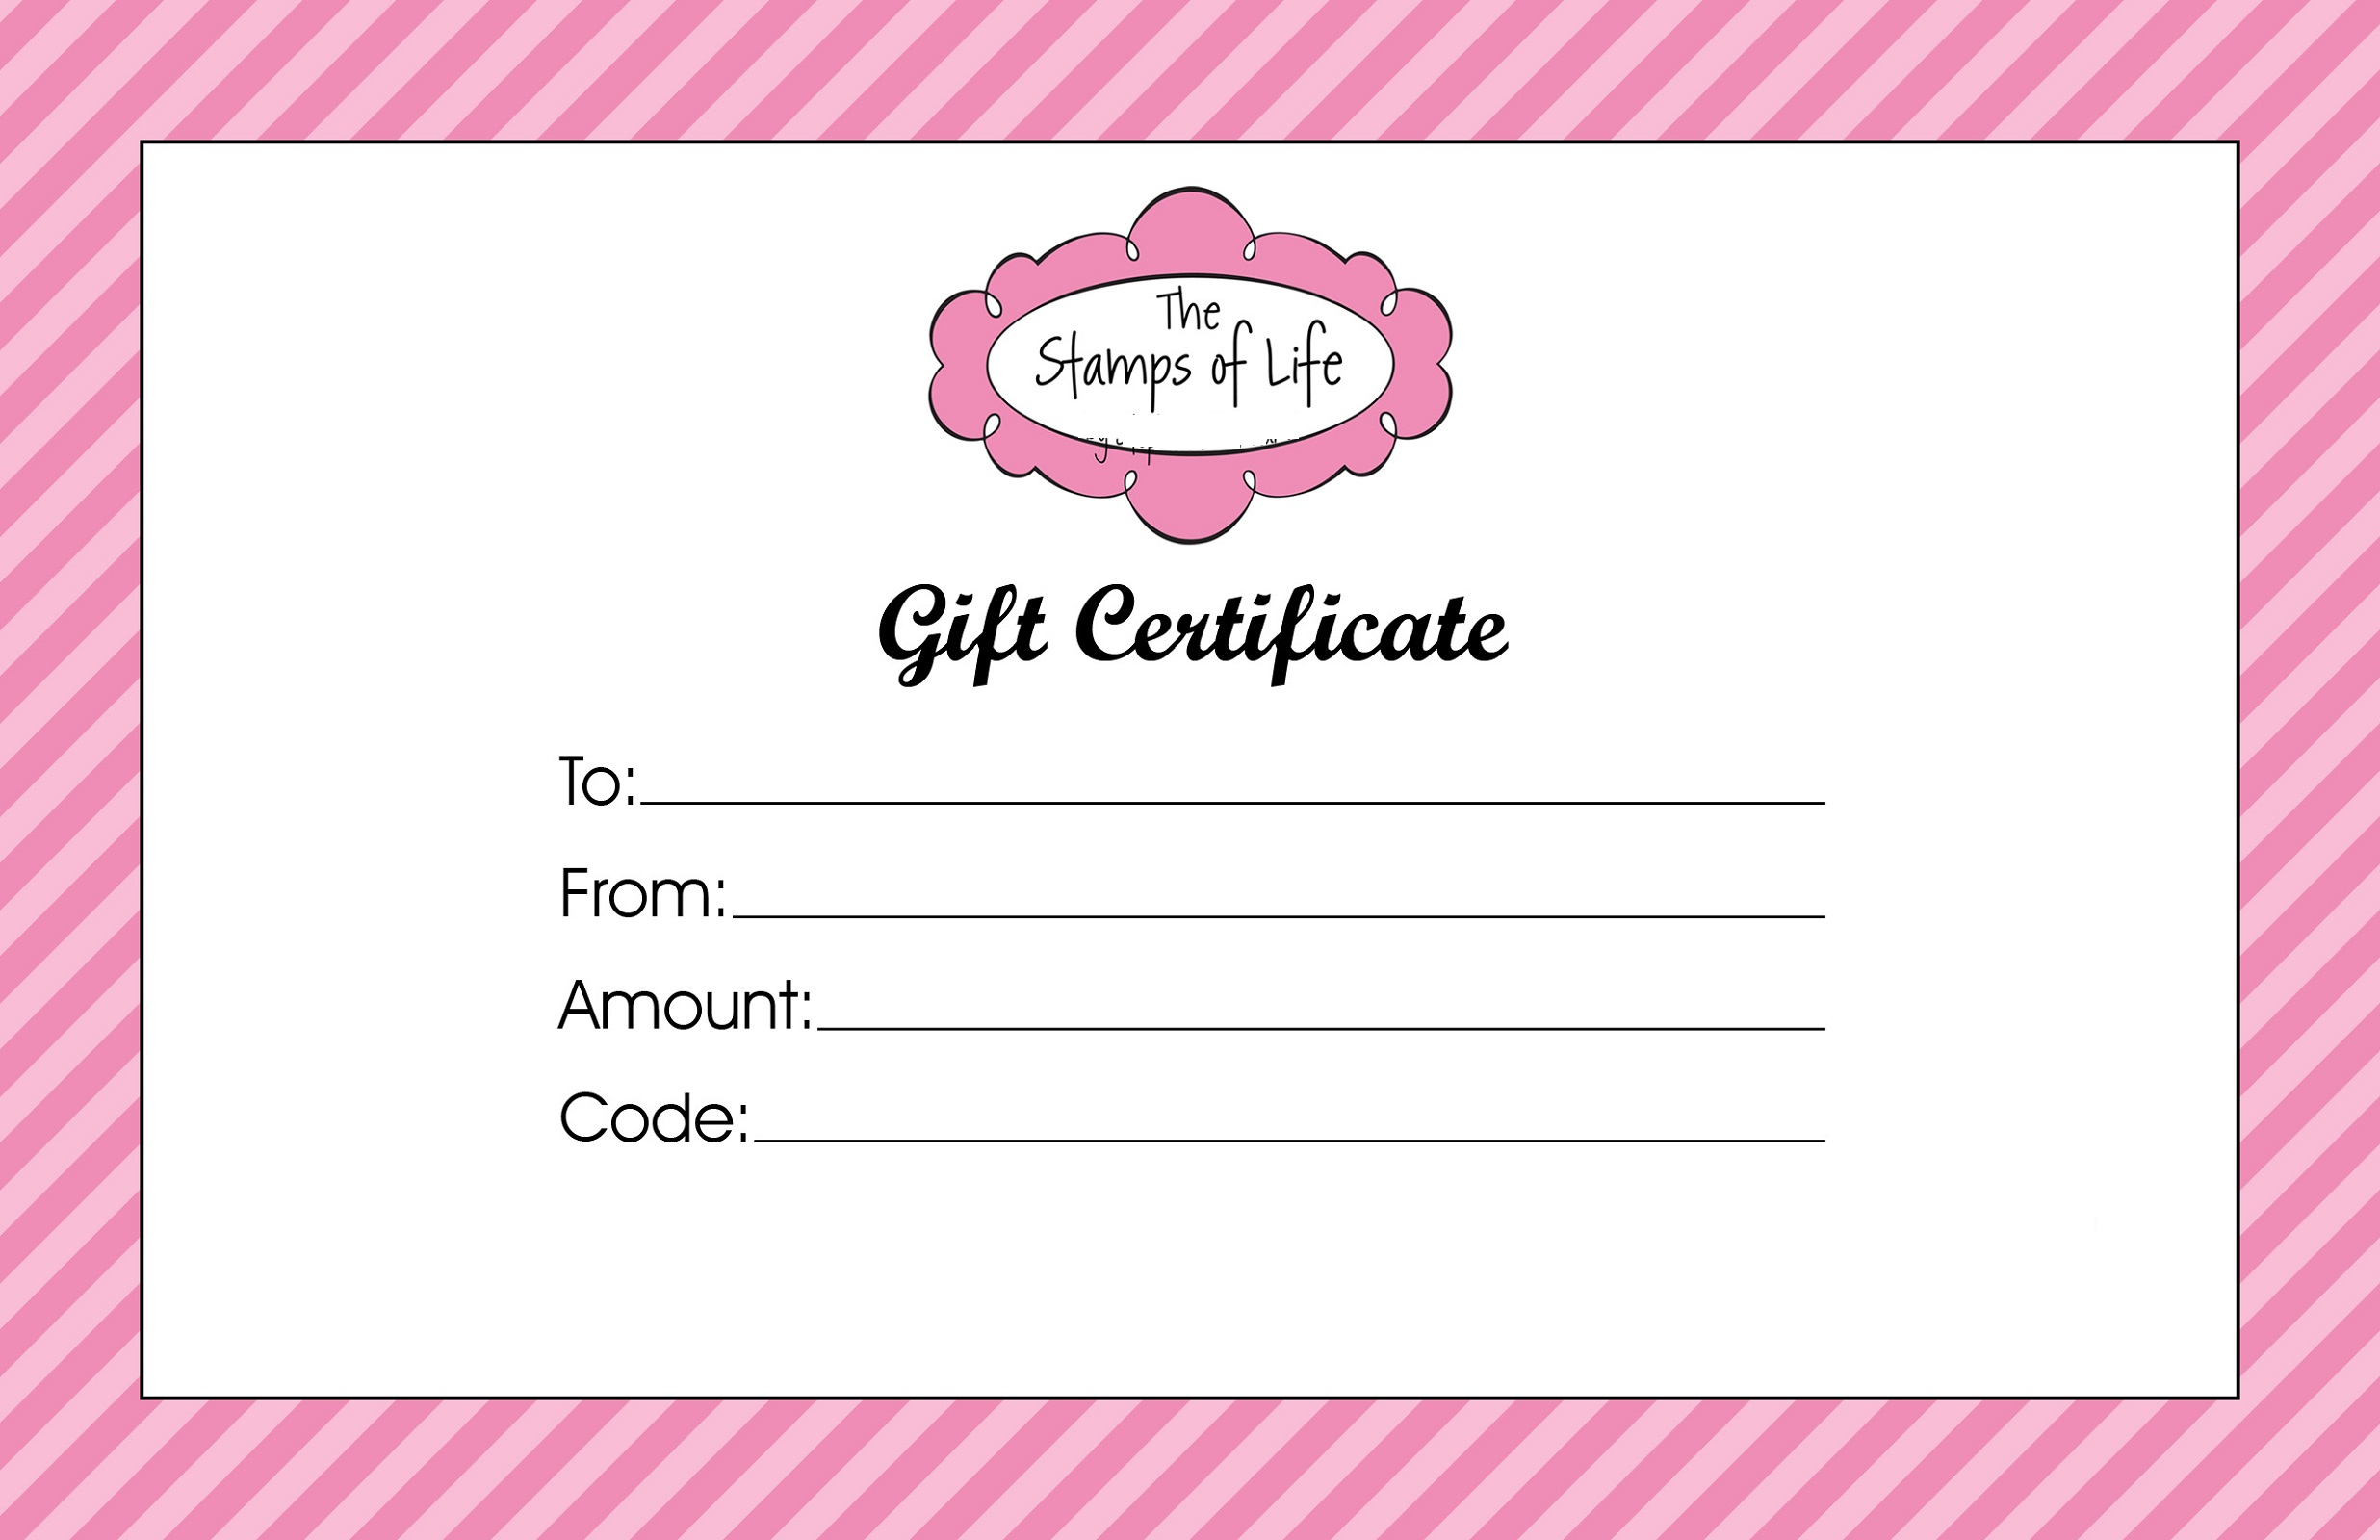 gift certificate template for girls